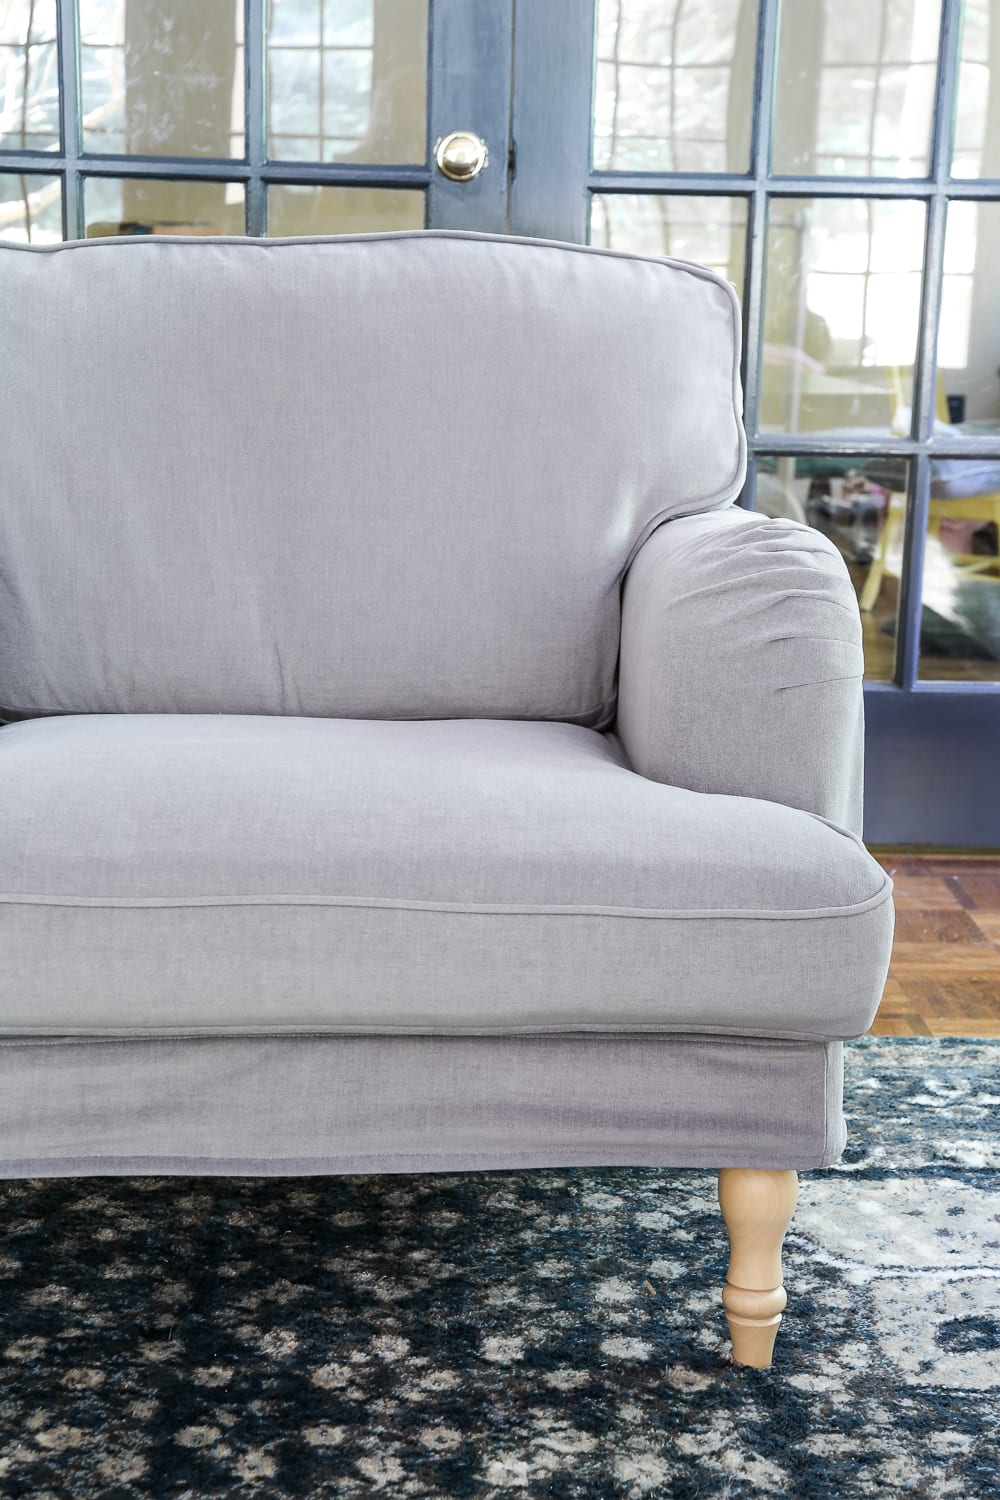 Ikea Sofa Round Rock Ikea S New Sofa And Chairs And How To Keep Them Clean Bless Er House